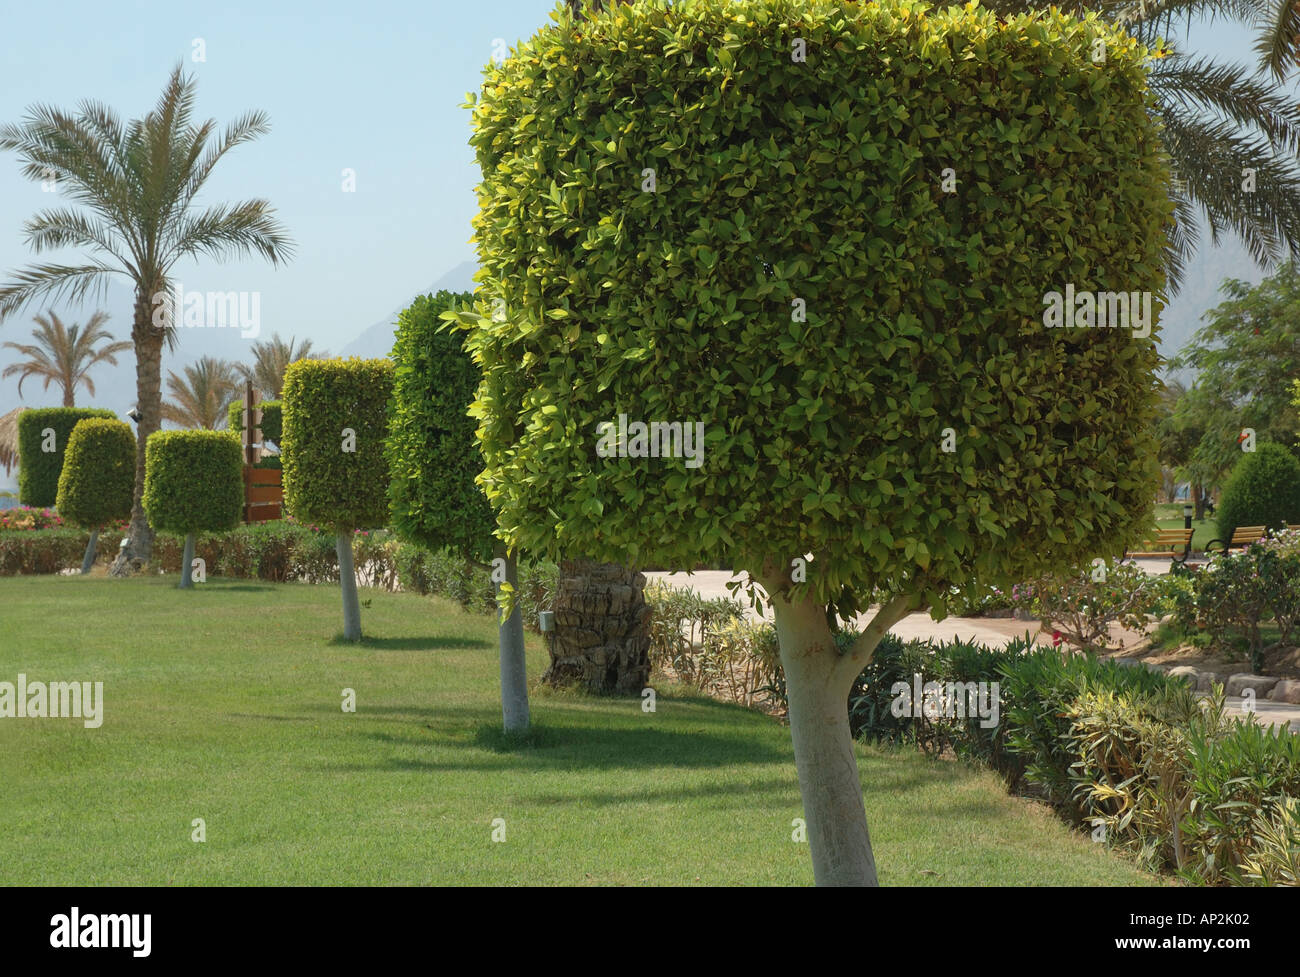 A Row Of Topiary Trees In The Garden At The Hilton Coral Resort